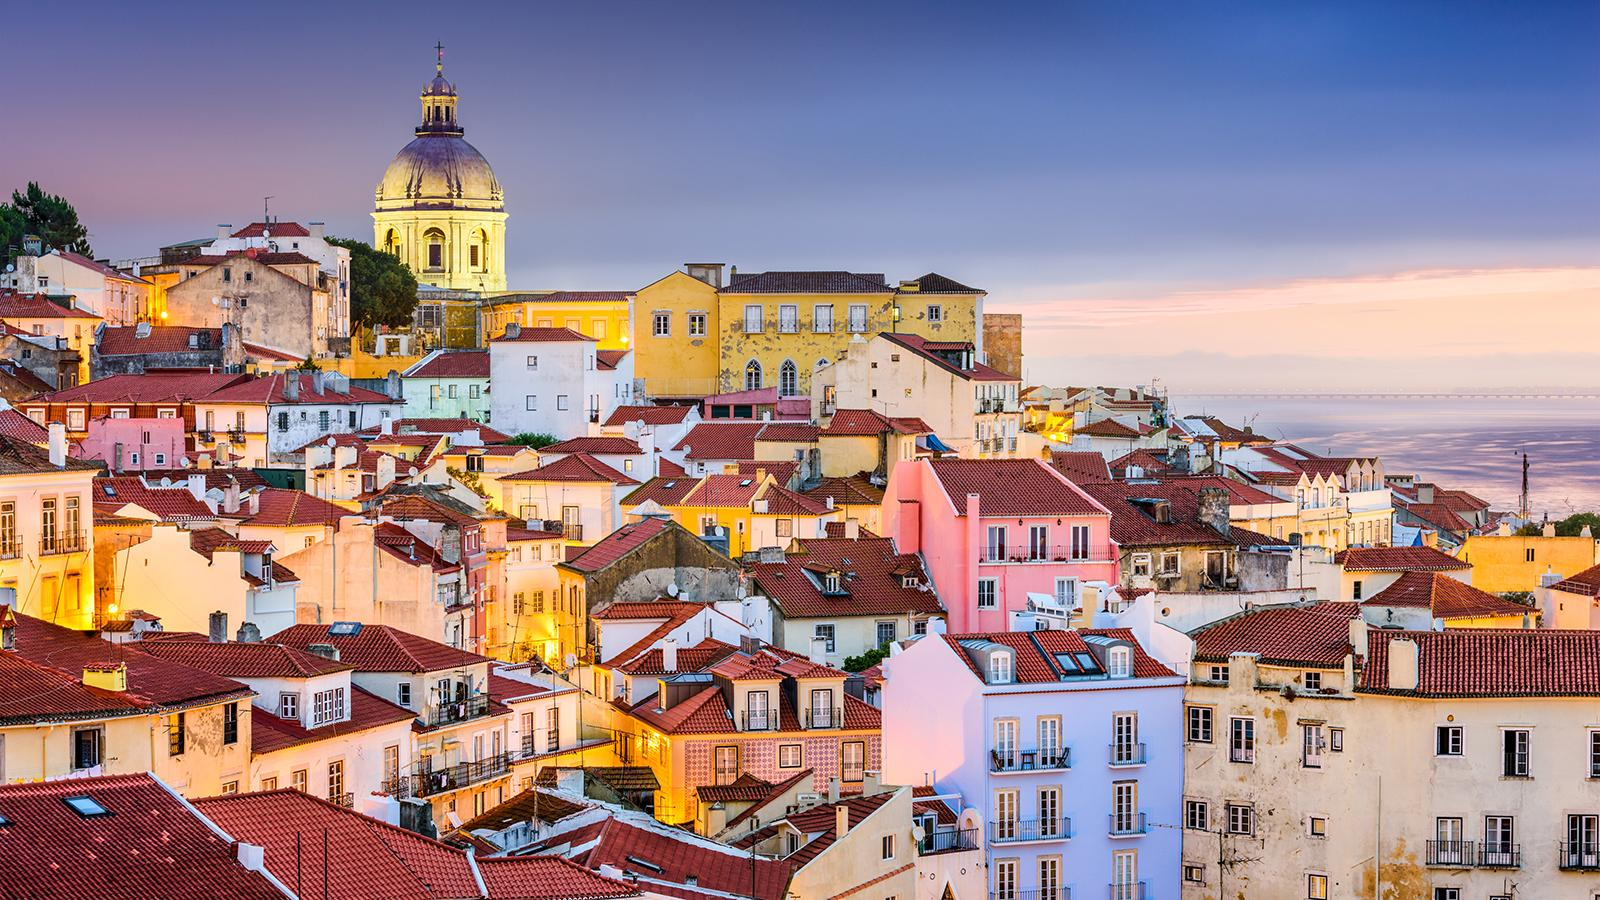 Robert Camuto returns from Portugal with a newfound appreciation for Lisbon's excitingly original cuisine and wines.